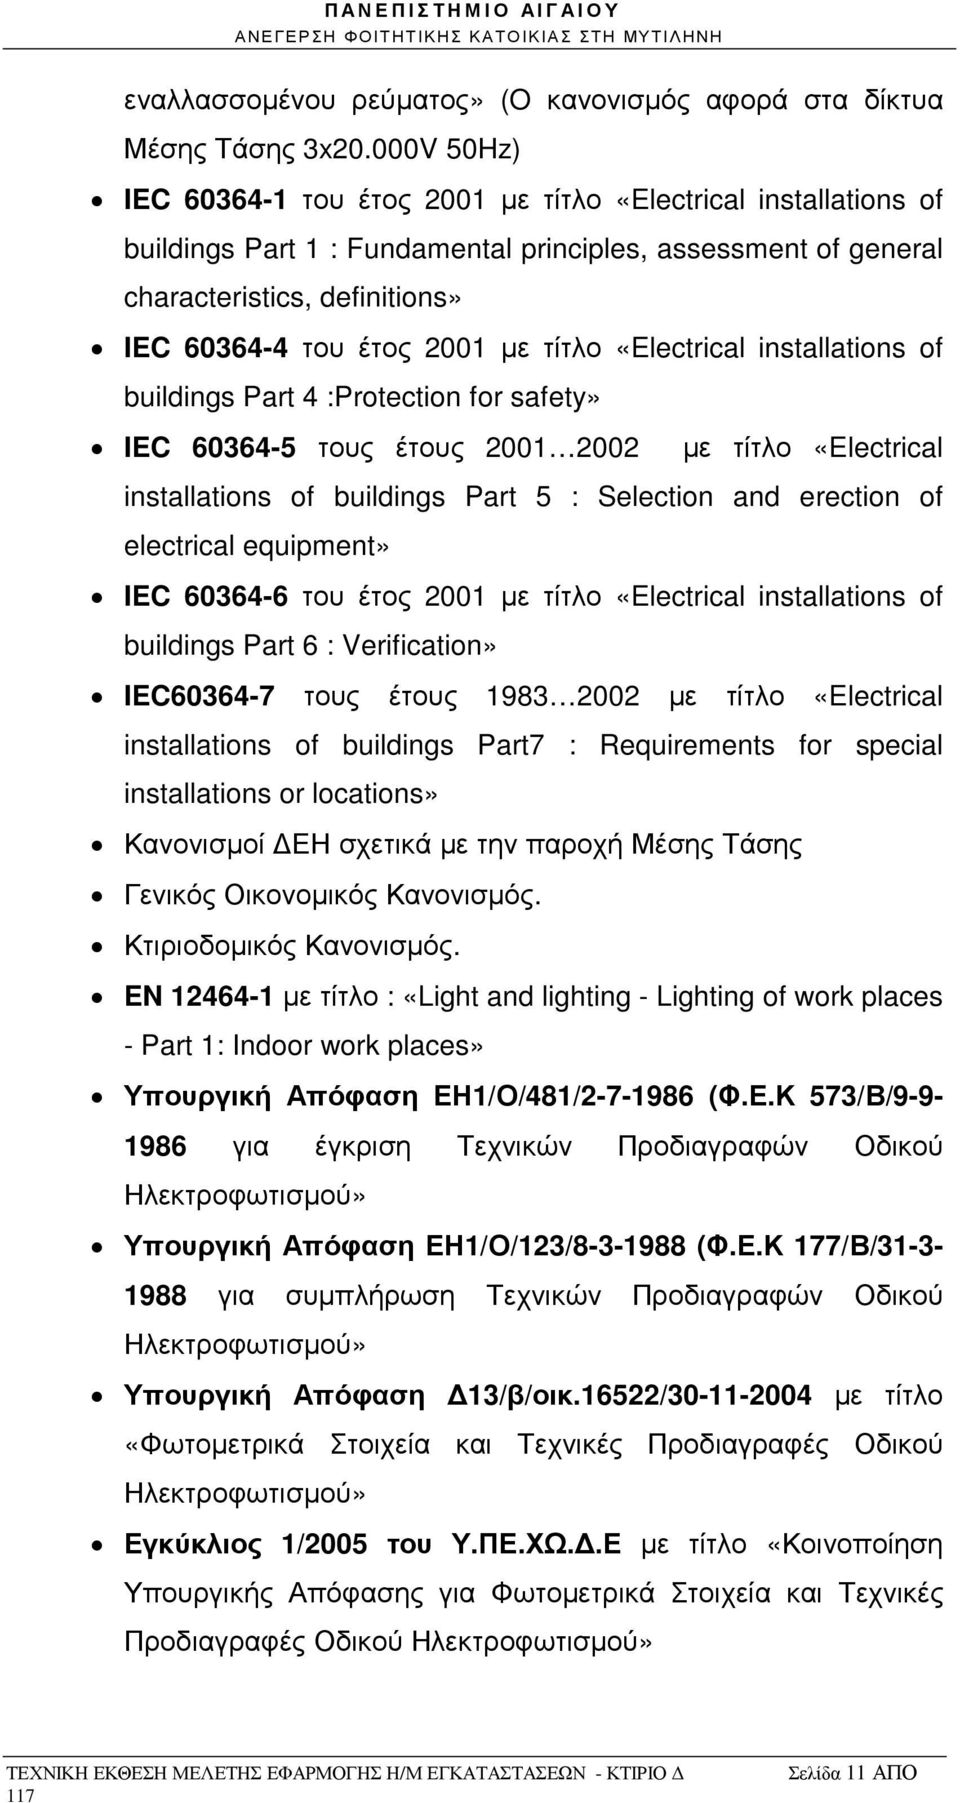 τίτλο «Electrical installations of buildings Part 4 :Protection for safety» IEC 60364-5 τους έτους 2001 2002 µε τίτλο «Electrical installations of buildings Part 5 : Selection and erection of